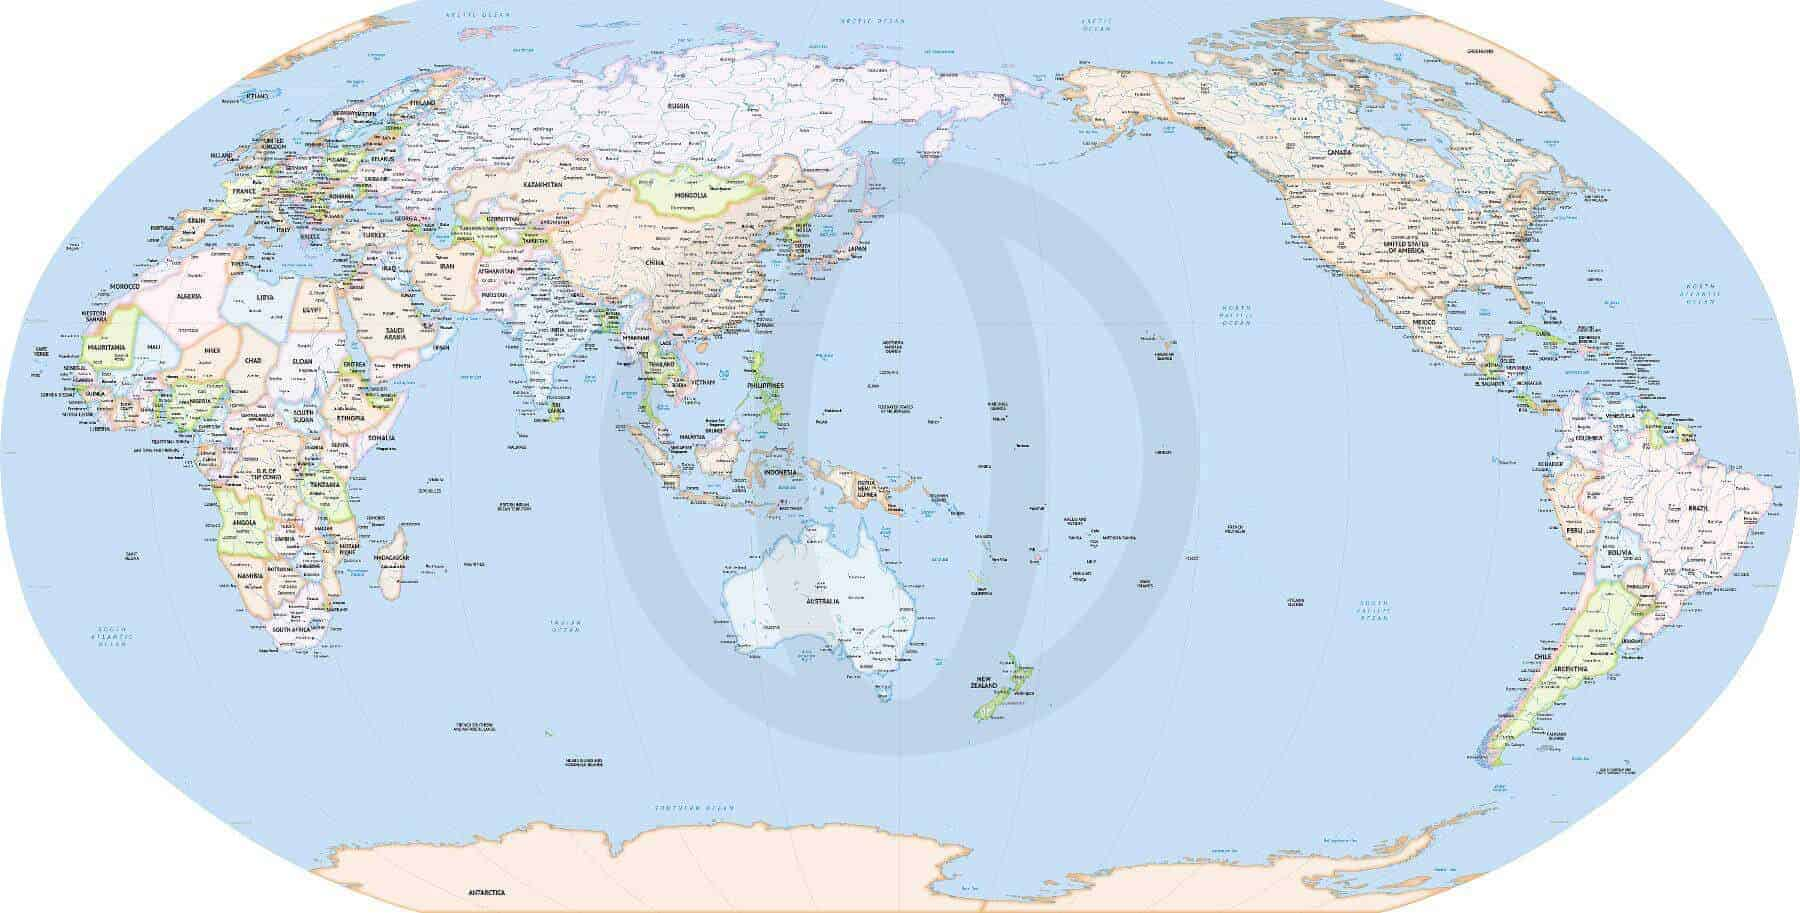 Map Of Australia Images.Detailed World Map Robinson Australia And Asia One Stop Map